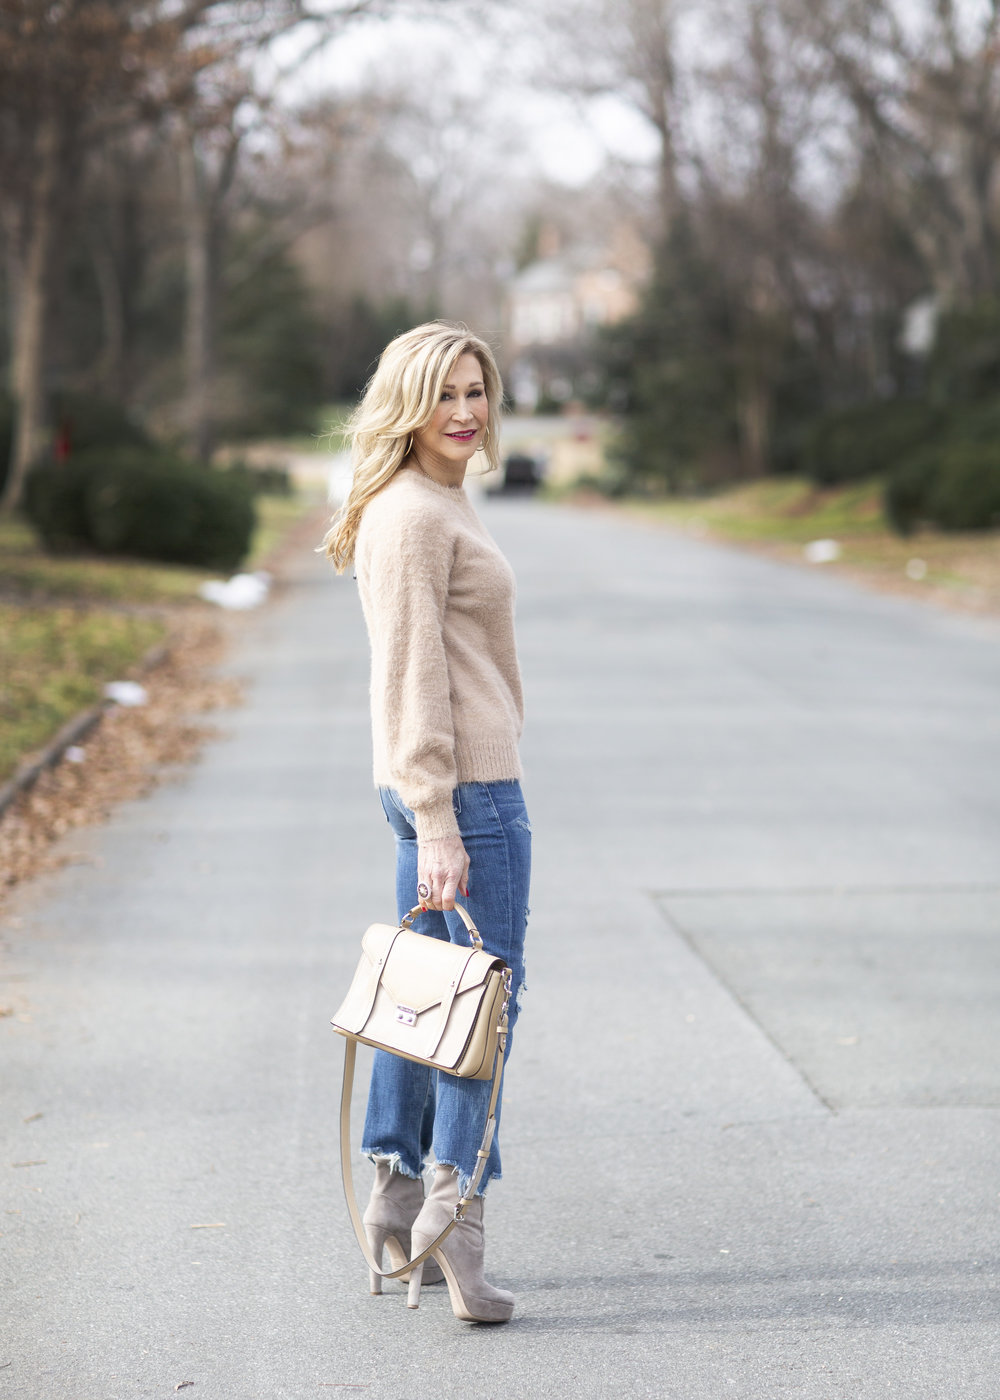 Winter Outfit Idea - Crazy Blonde Style